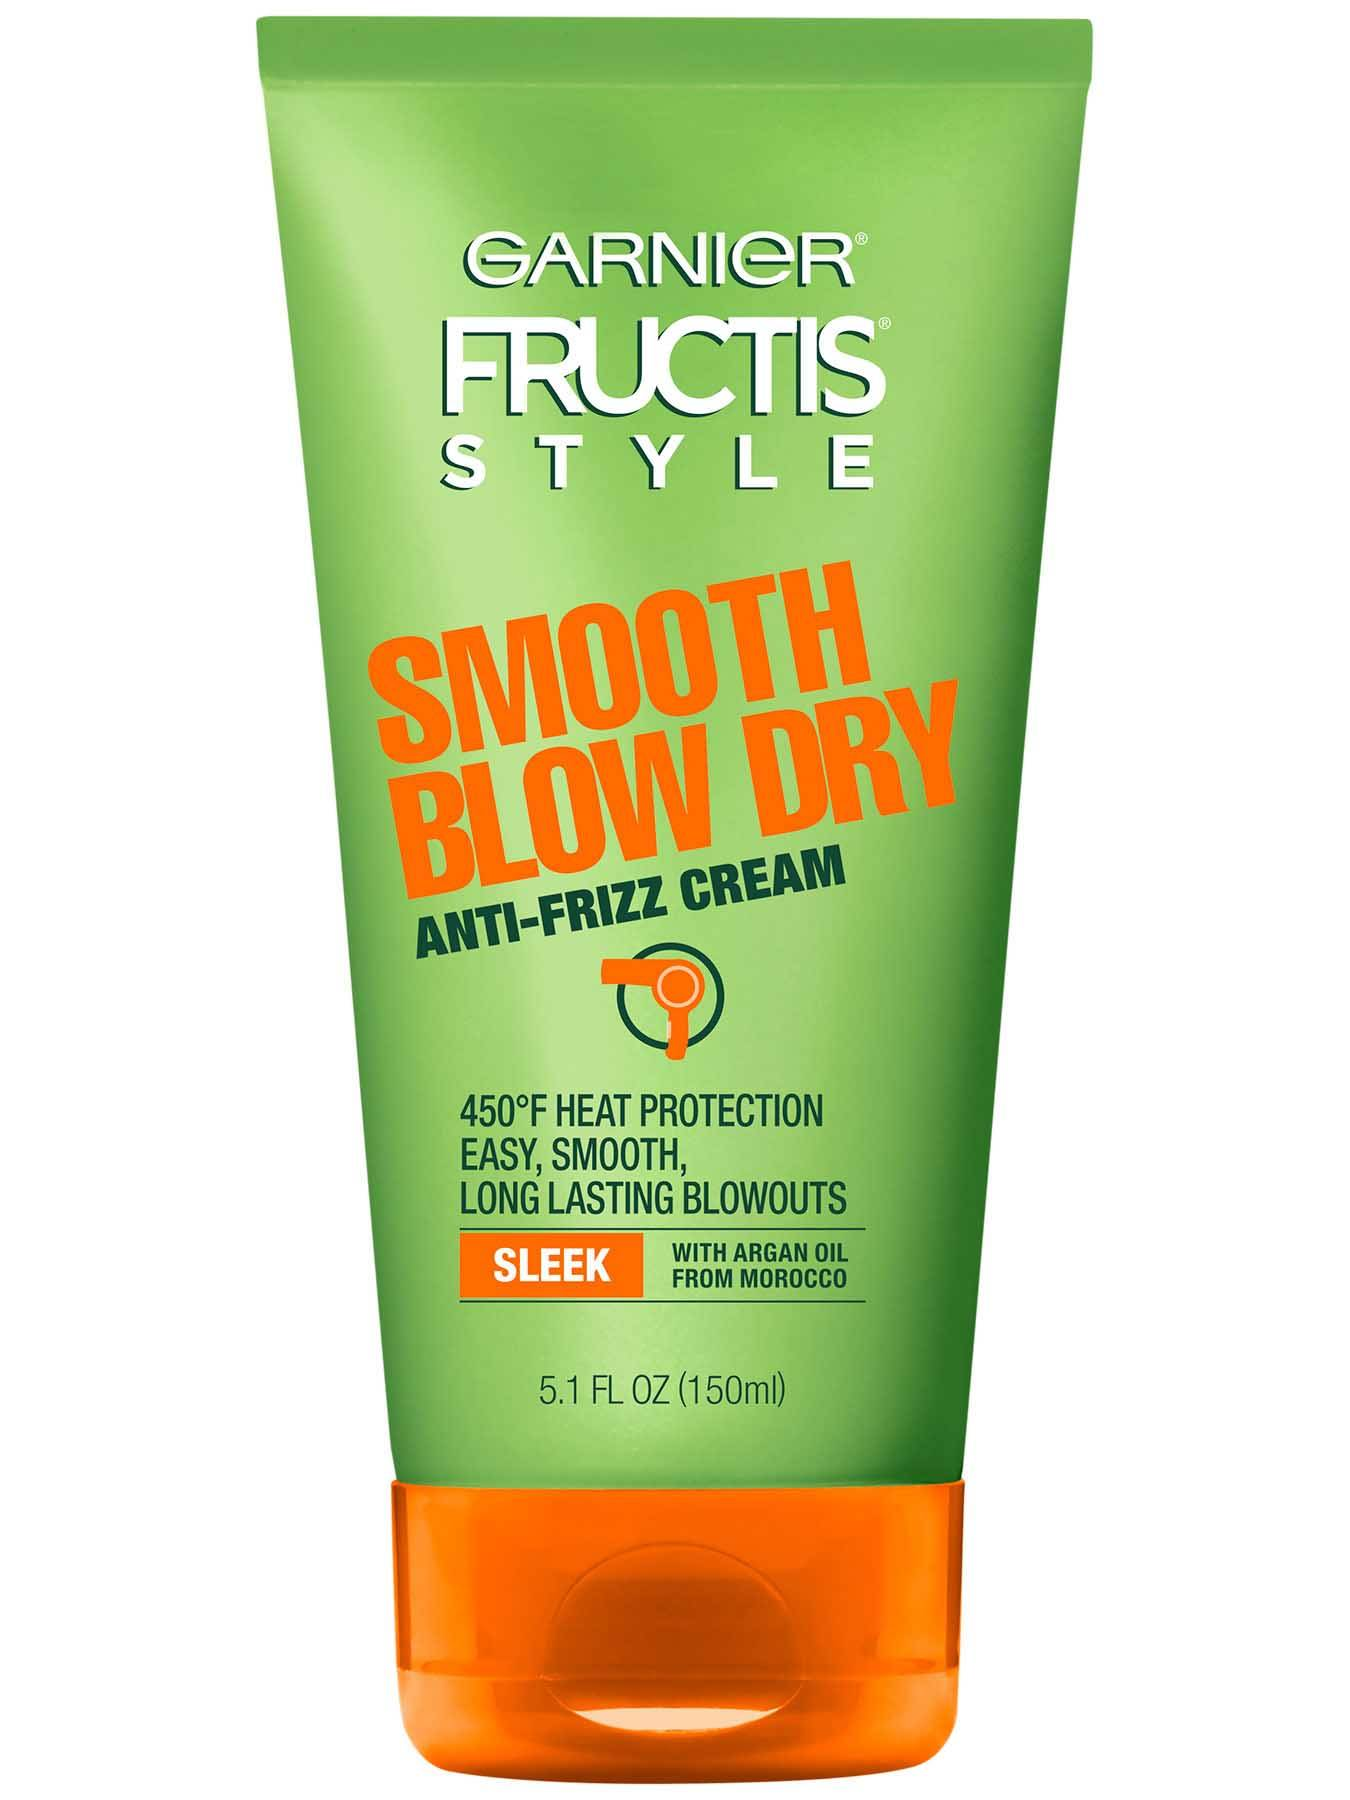 Garnier Fructis Style Sleek & Shine Blow Dry Anti-Free Cream 5.1 oz - Hair Style for Frizzy Hair